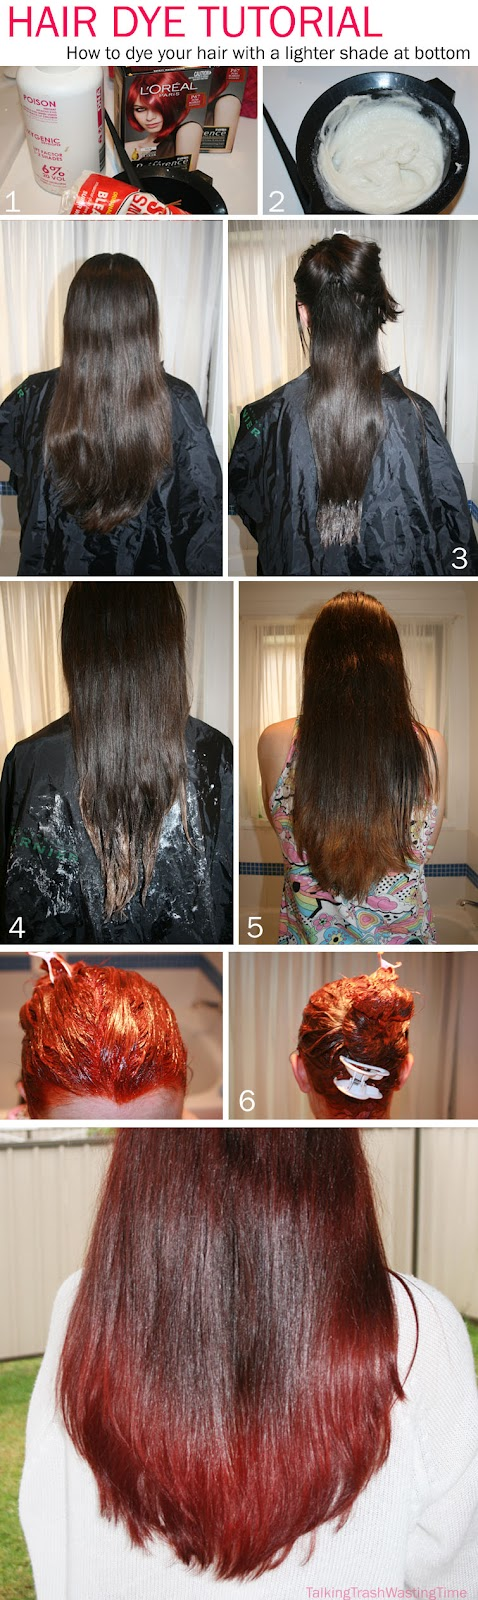 Hair Dye Tutorial  Dark To Light Shades Of Red  Now Thats Peachy